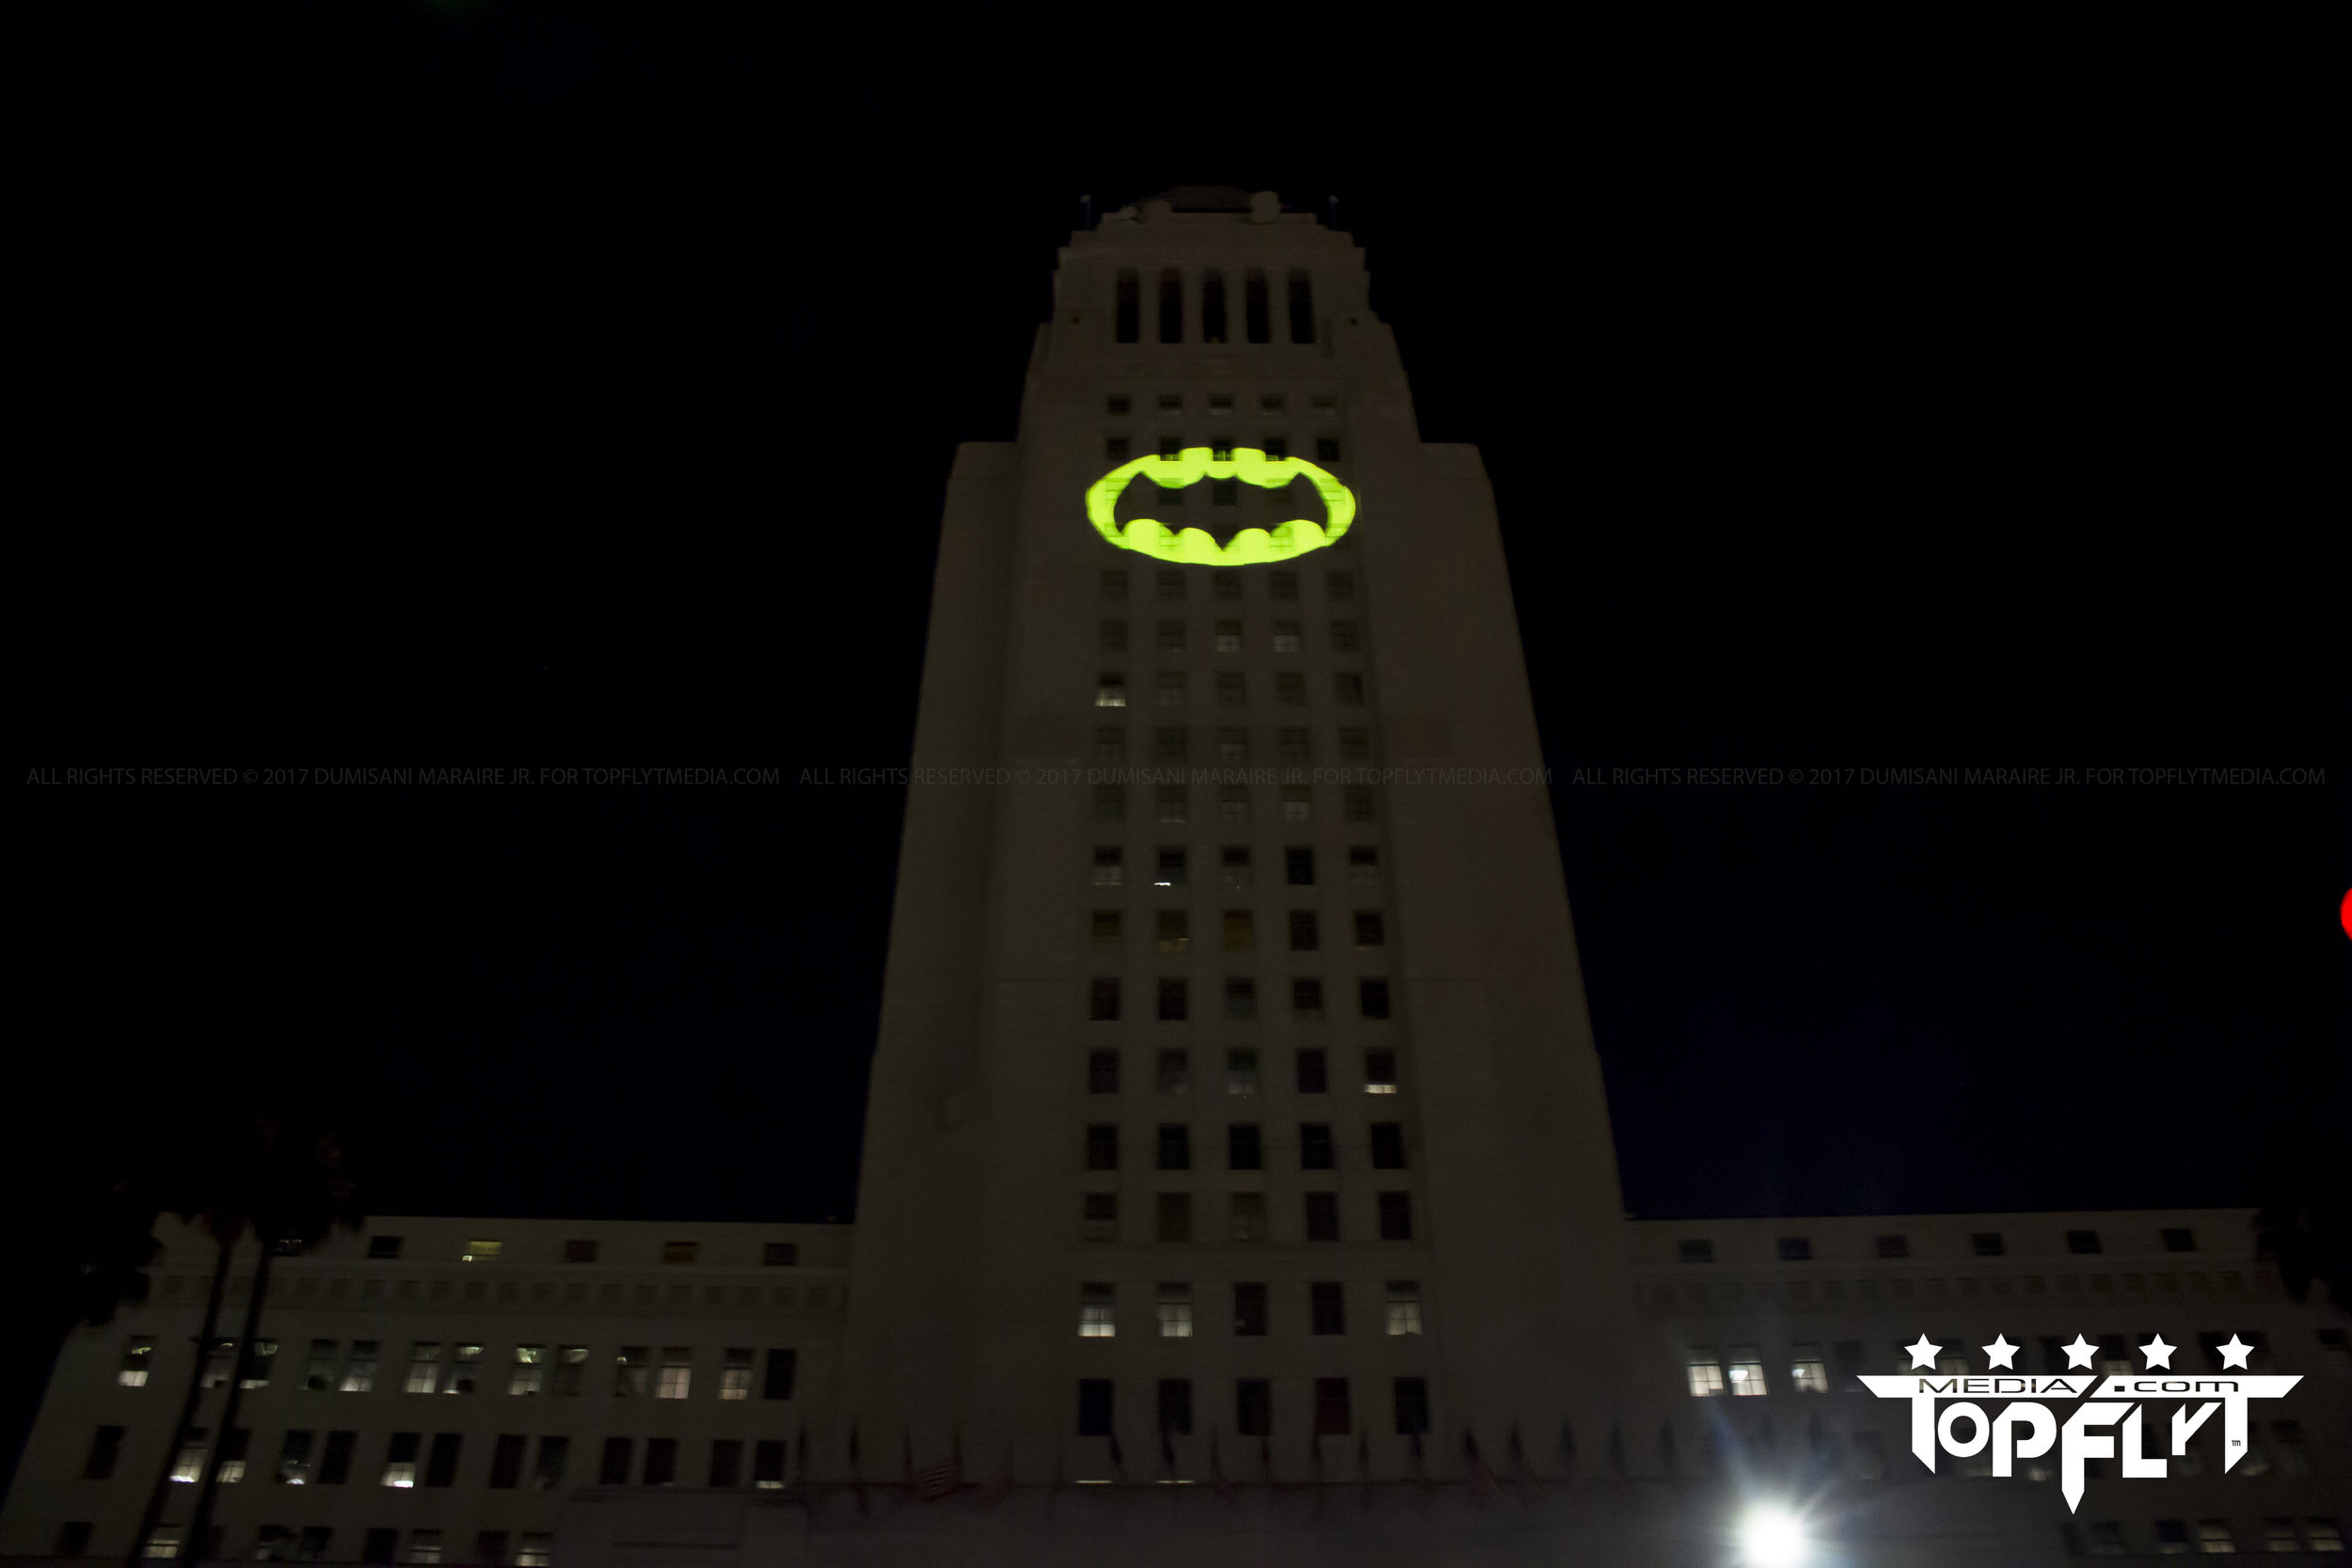 Batman Light Los Angeles City Hall Adam West